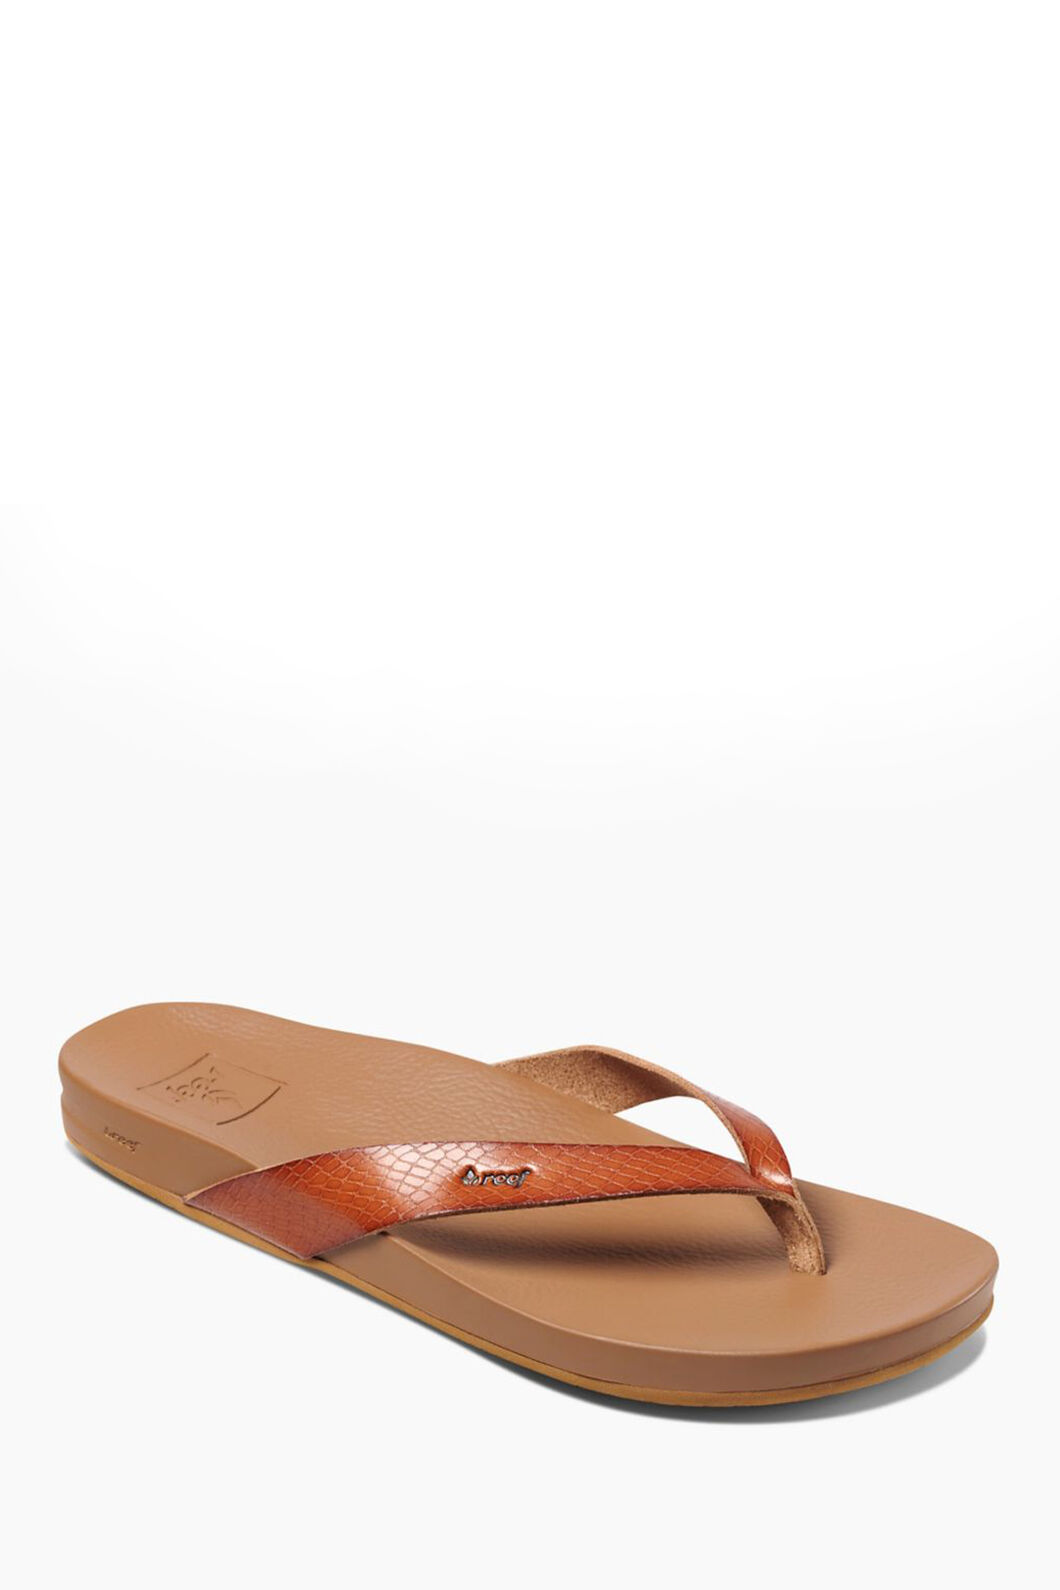 Reef Cushion Bounce Court Sandals — Women's, Brown, hi-res